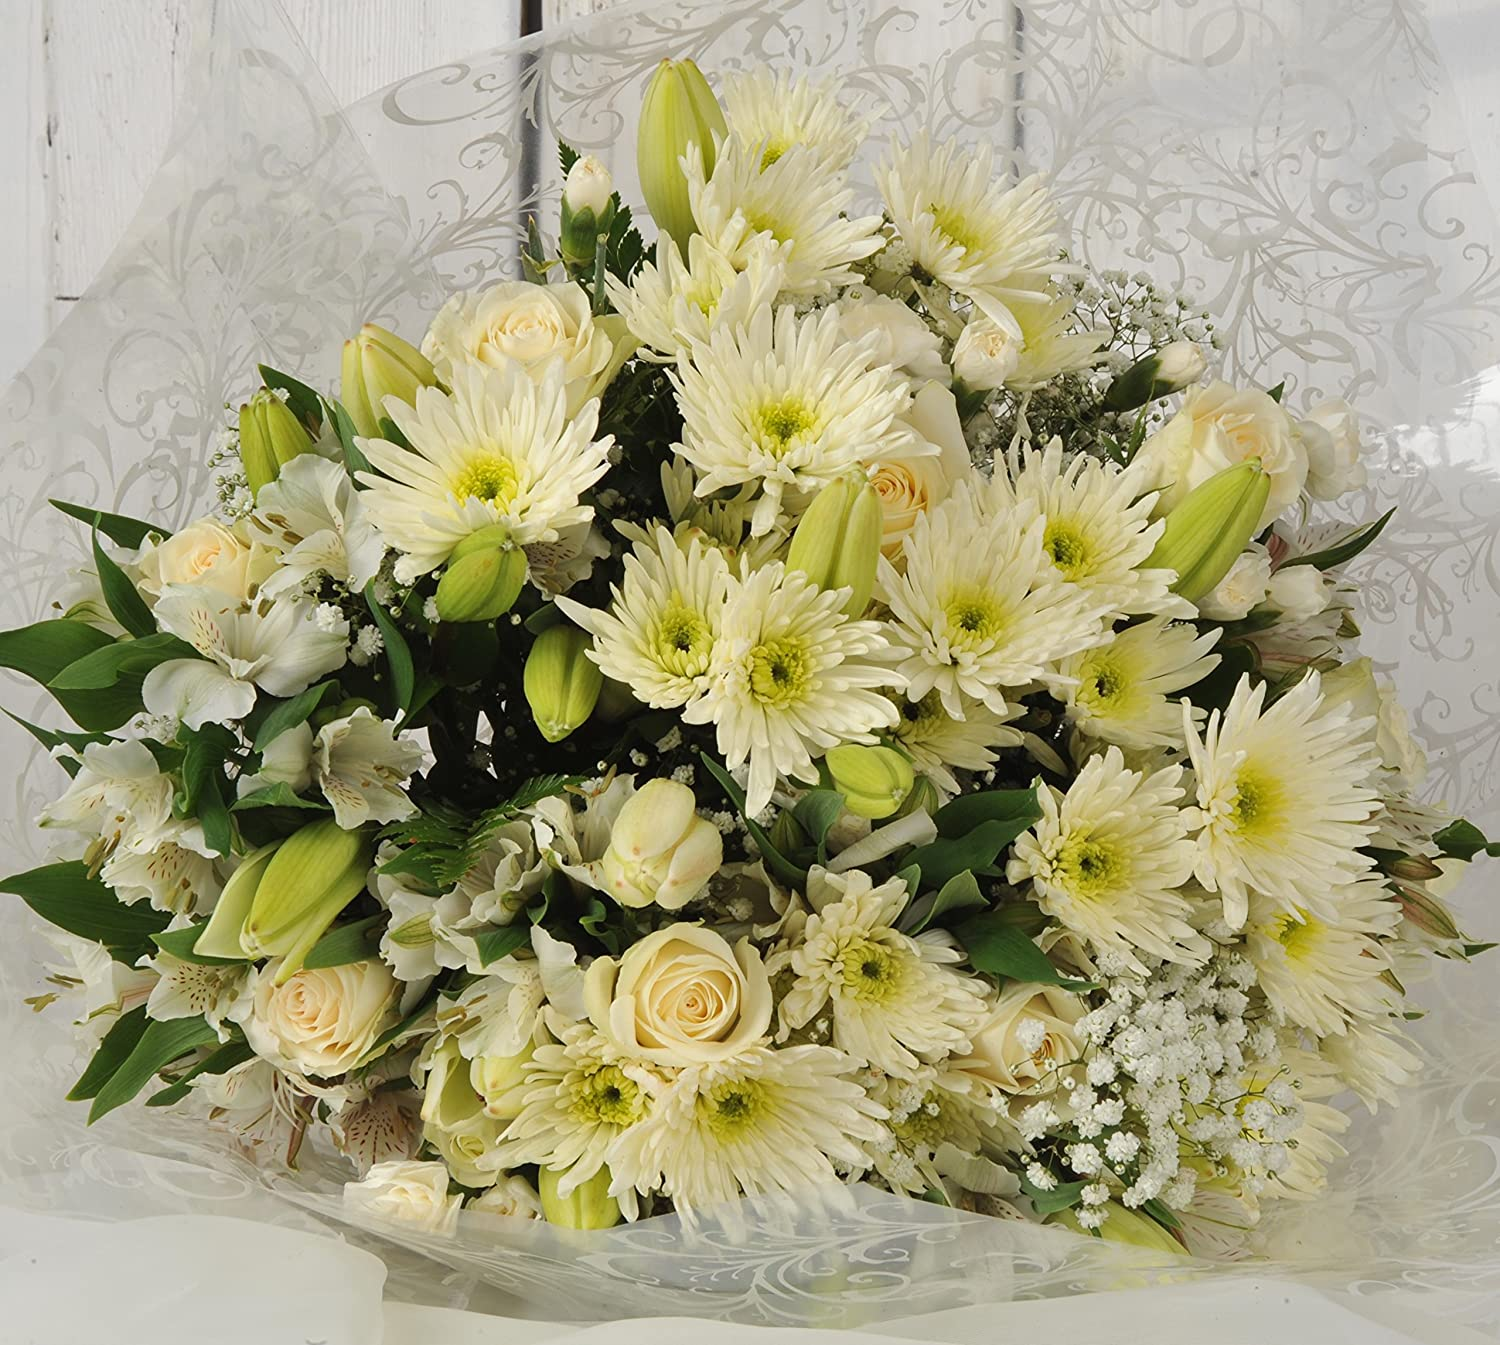 Sympathy Flowers Delivered Next Day Beautiful White Luxury Fresh